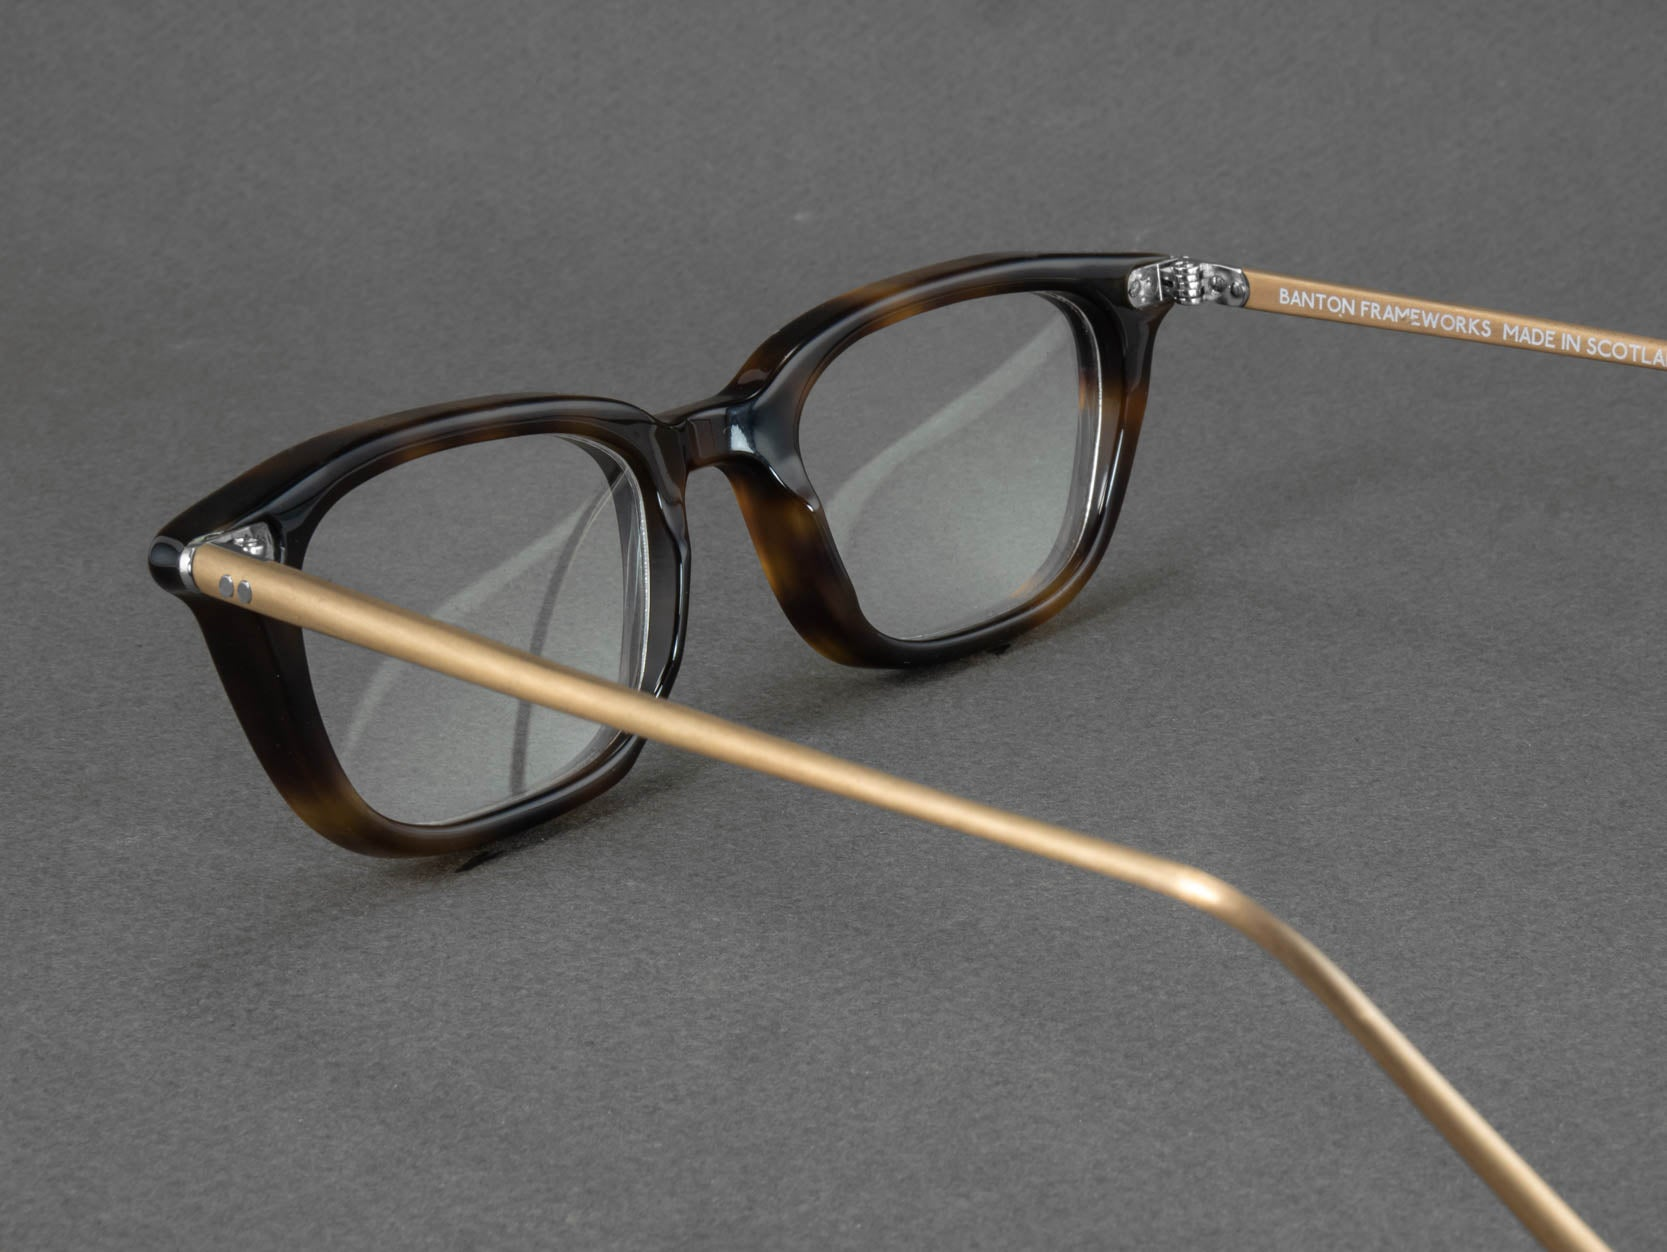 rectangular tortoise shell glasses frame aerial view